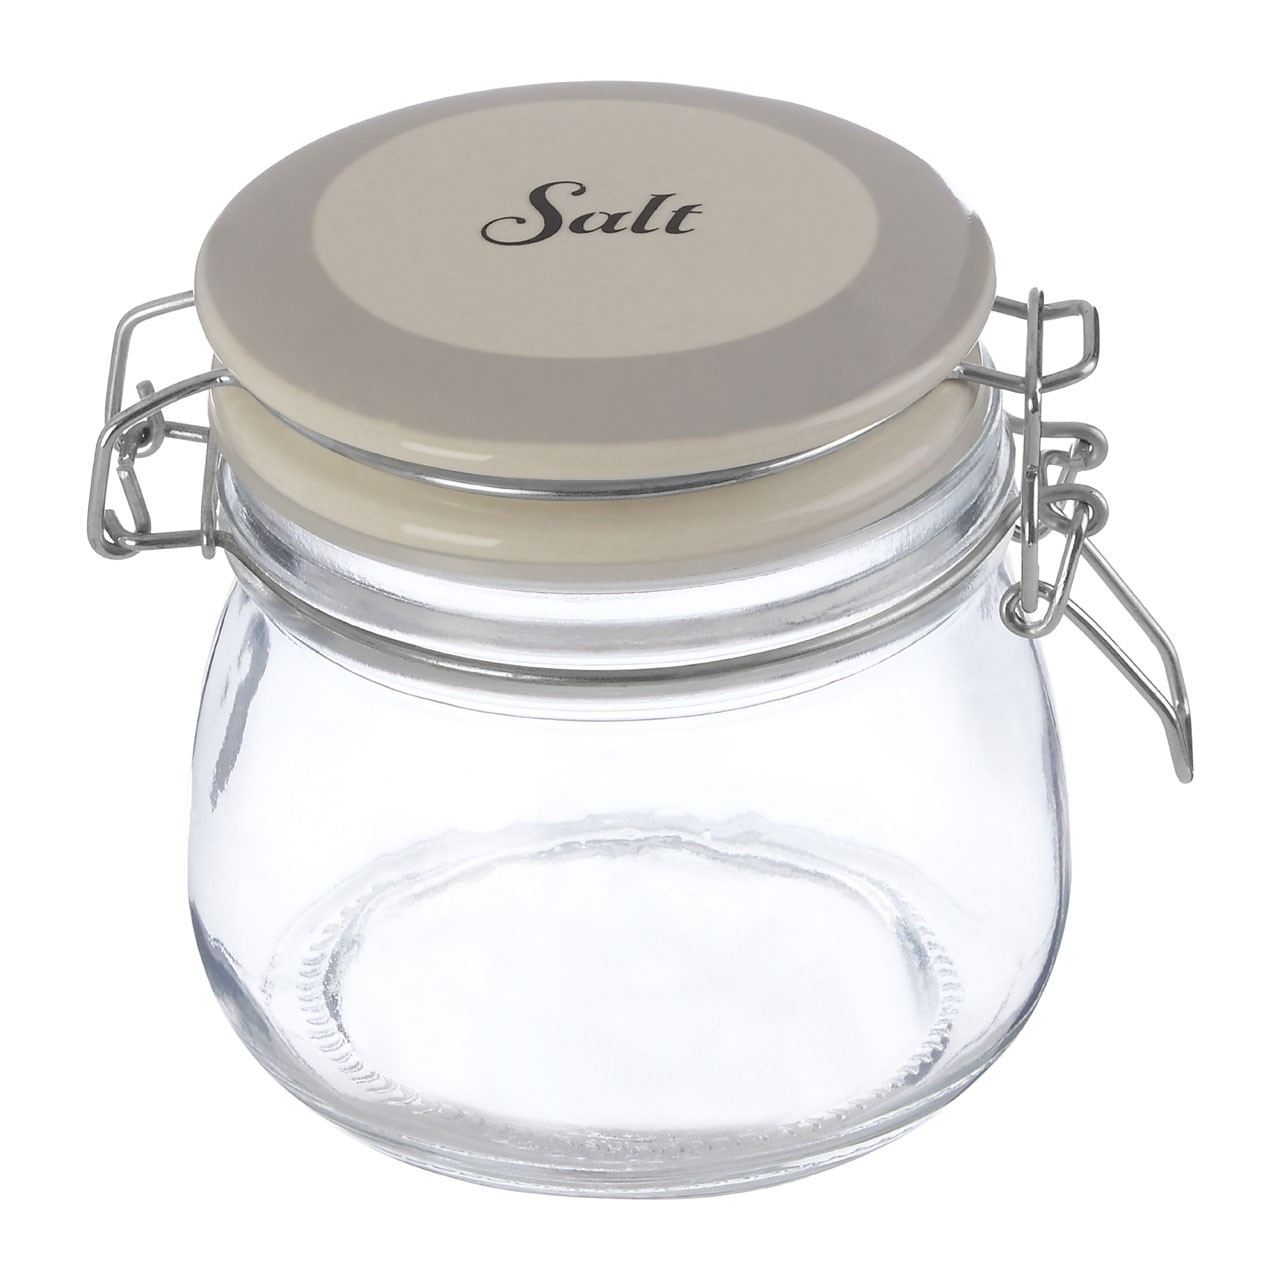 Grocer Salt Storage Jar Metal Top Lid Extremely Durable